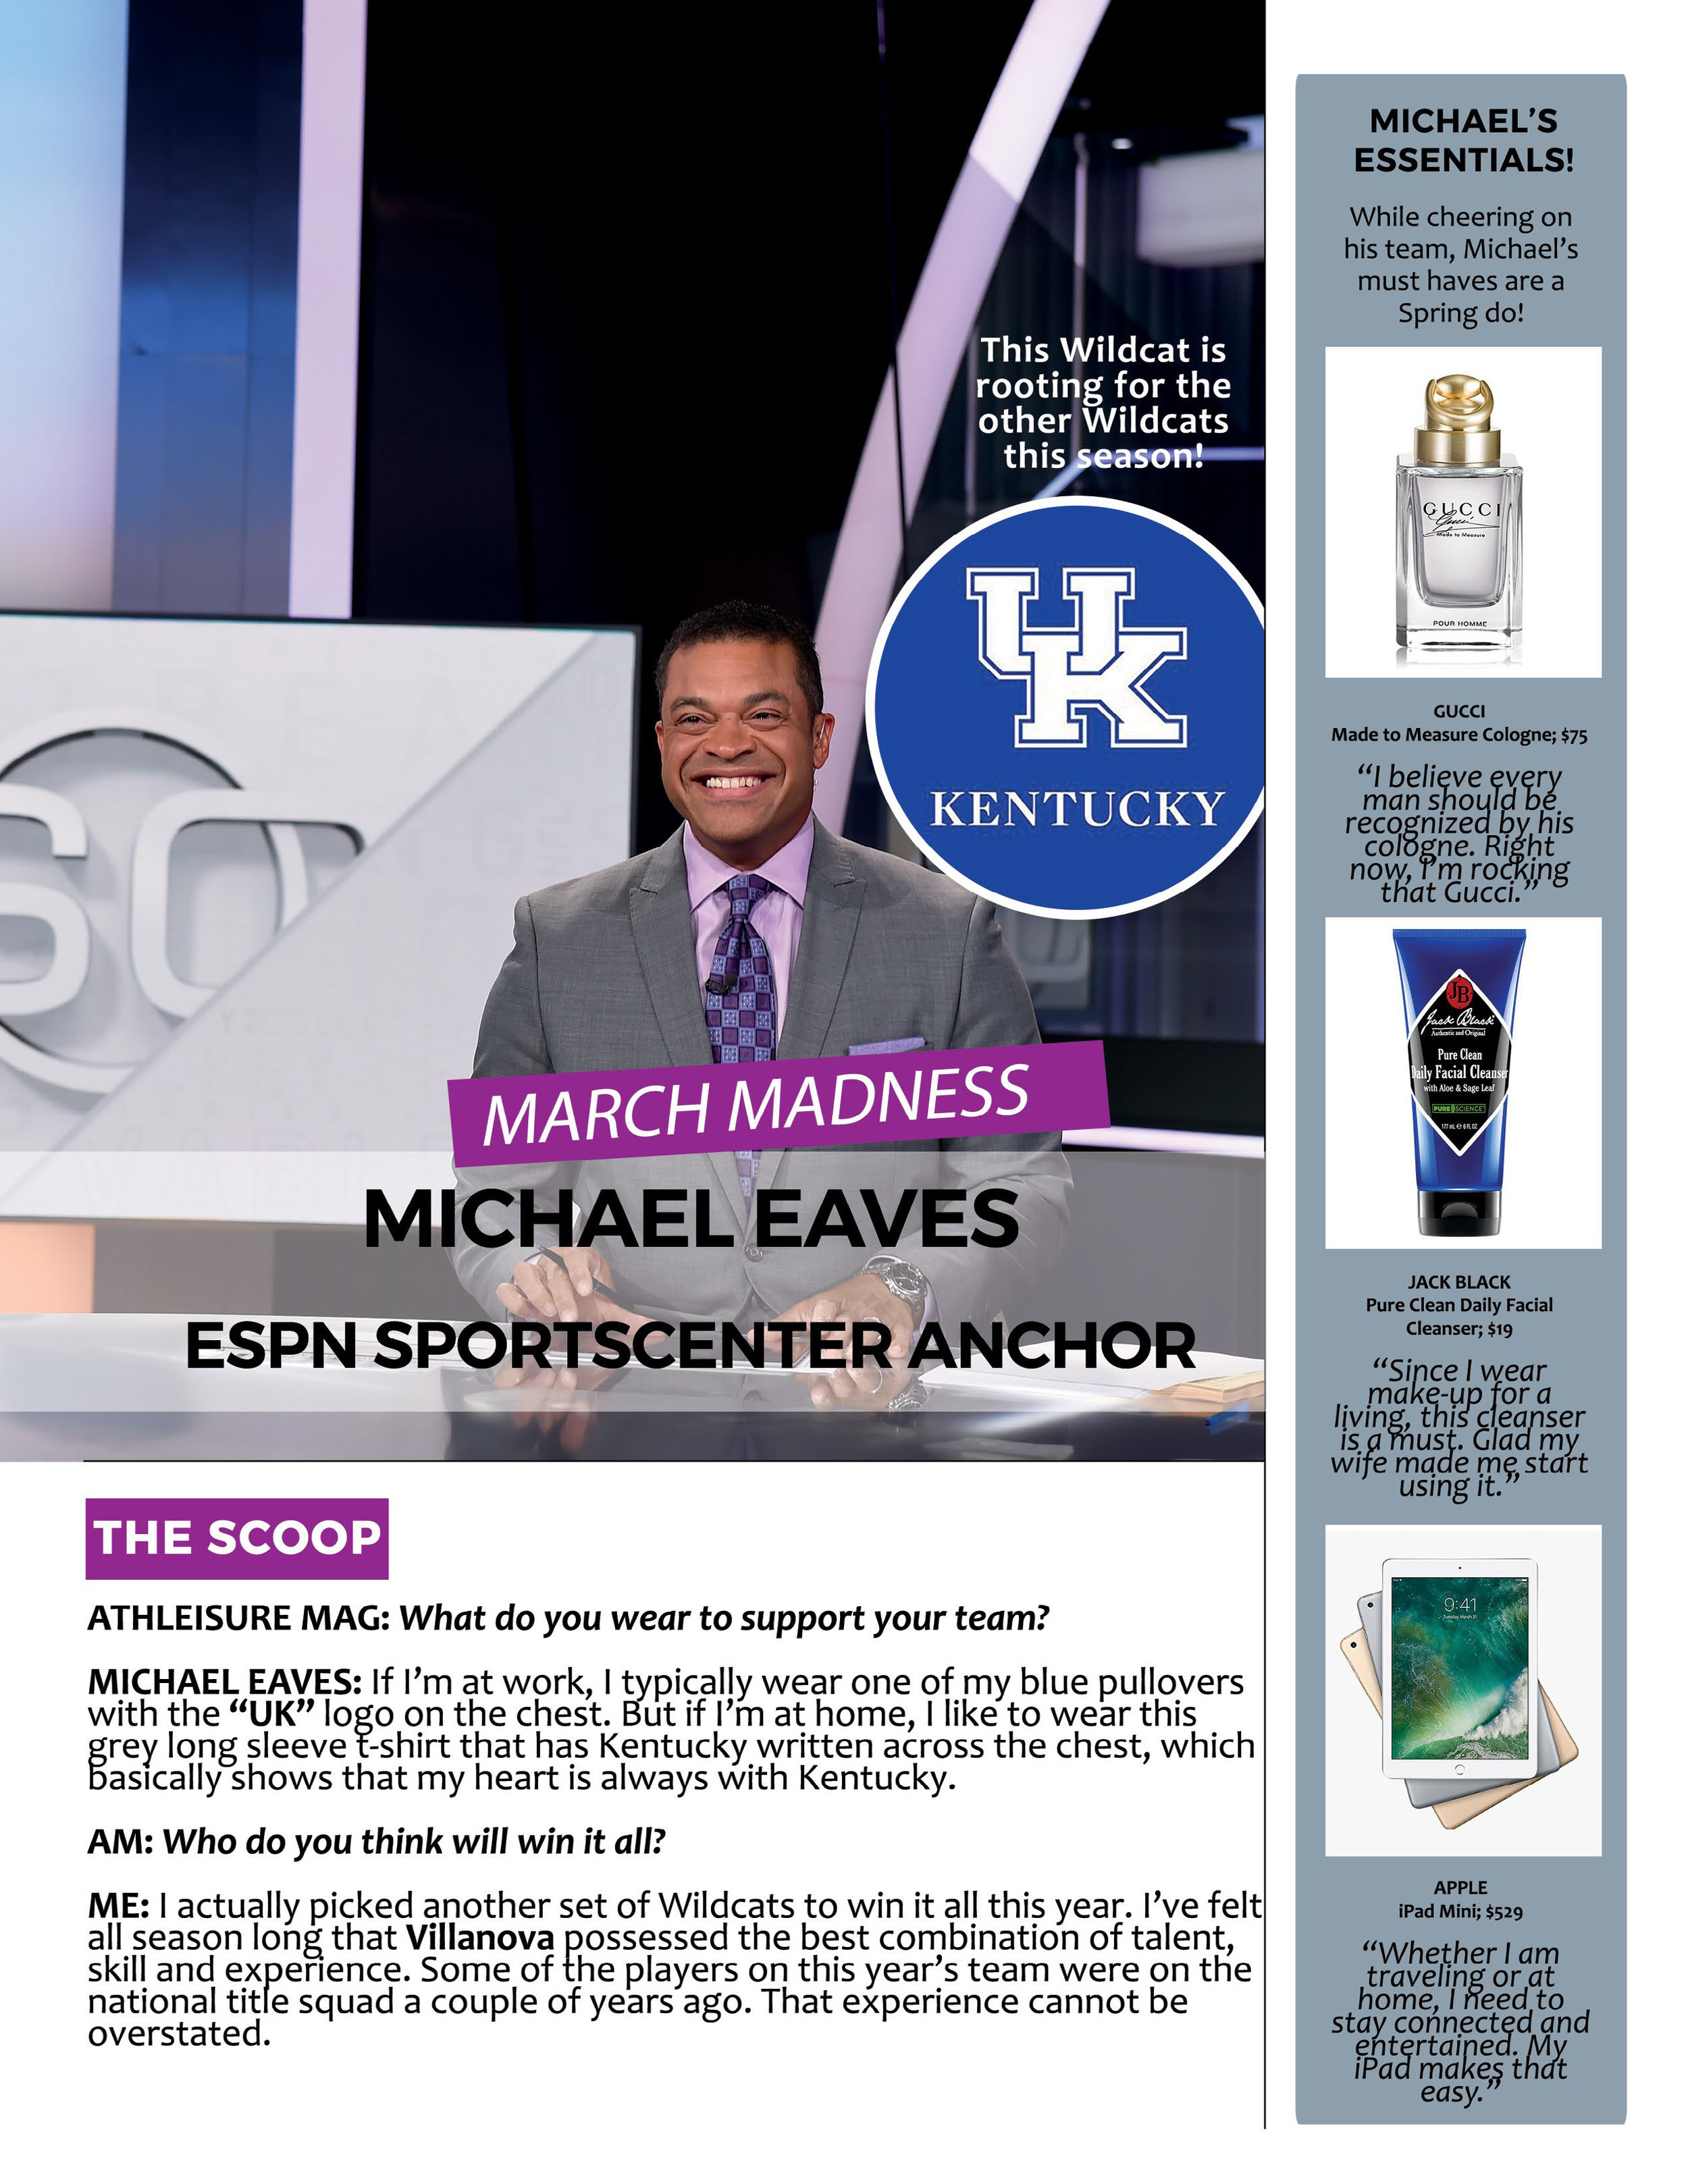 AM MAR MARCH MADNESS-1a.jpg